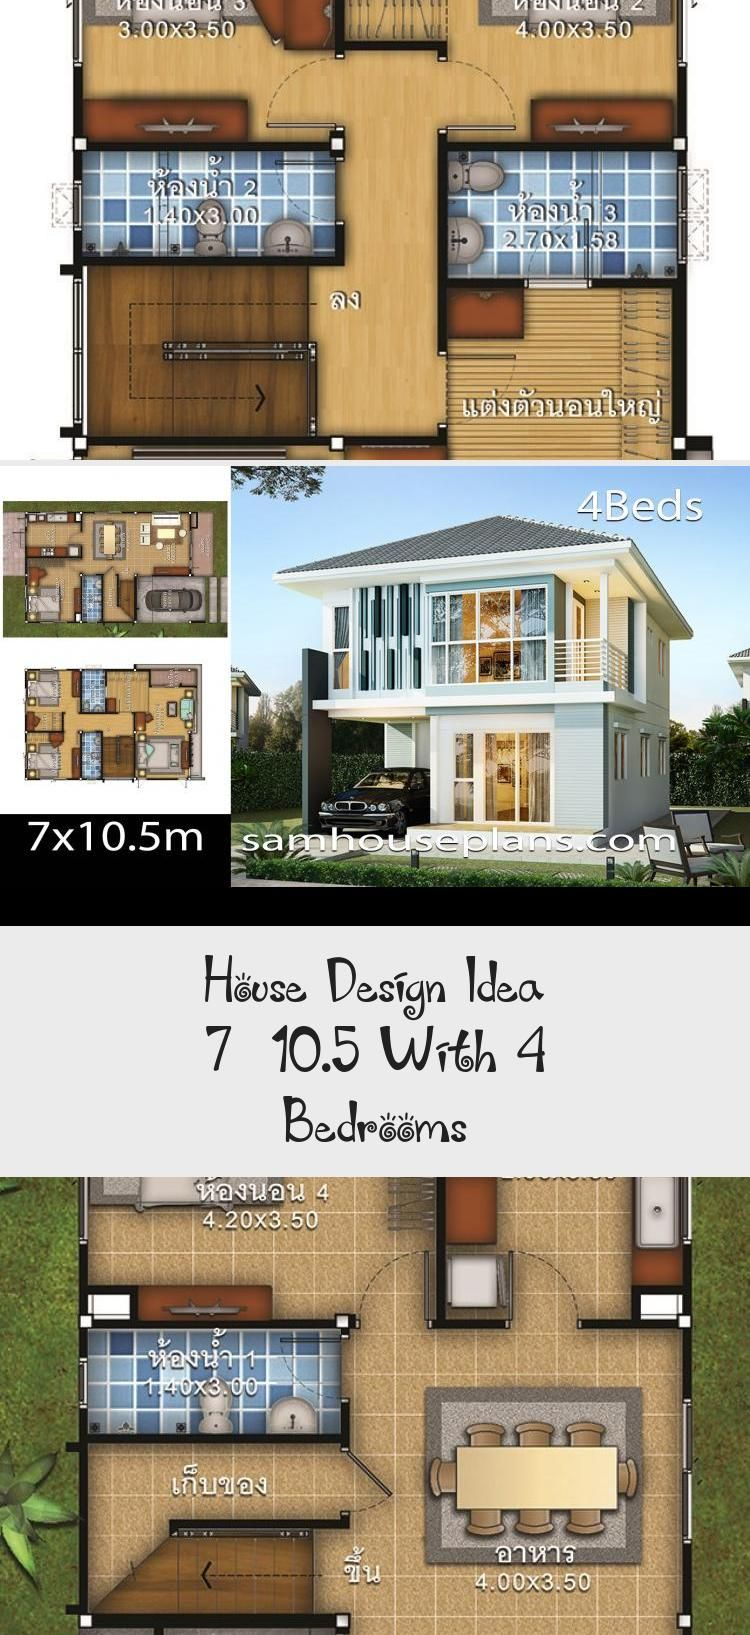 House Design Idea 7 10 5 With 4 Bedrooms In 2020 House Small House Plans House Plans